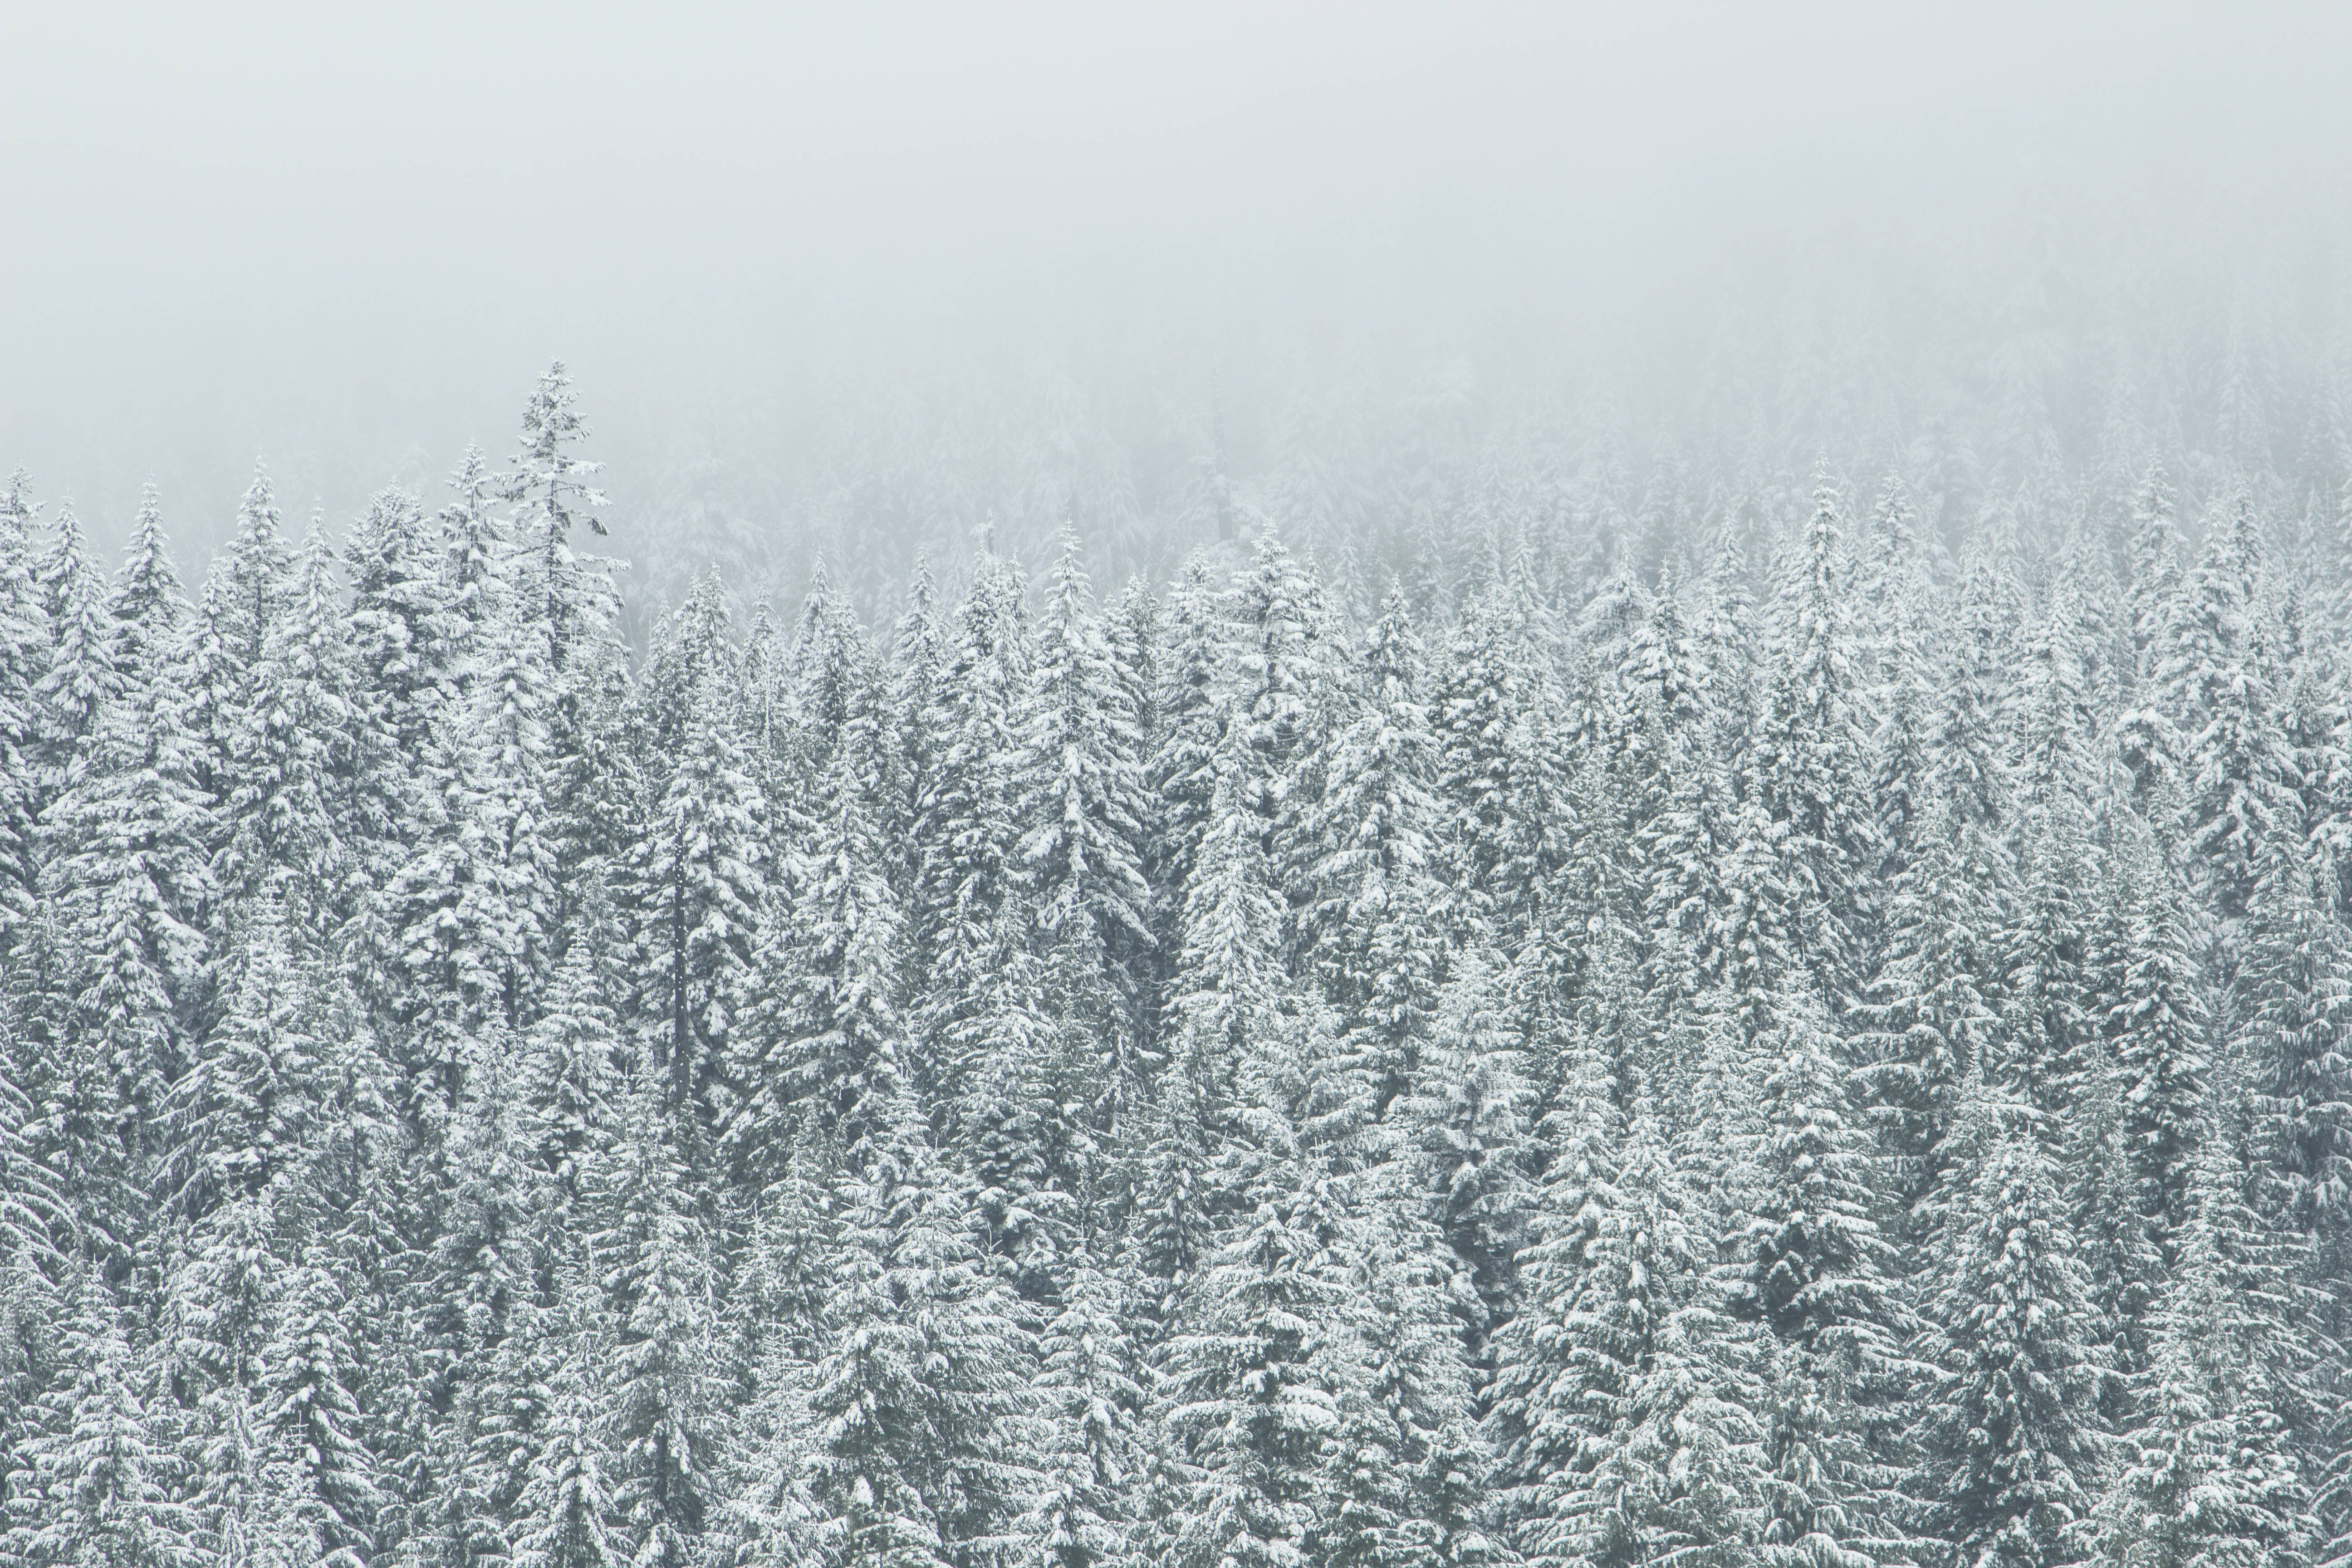 Snow covered evergreen forest on a foggy day